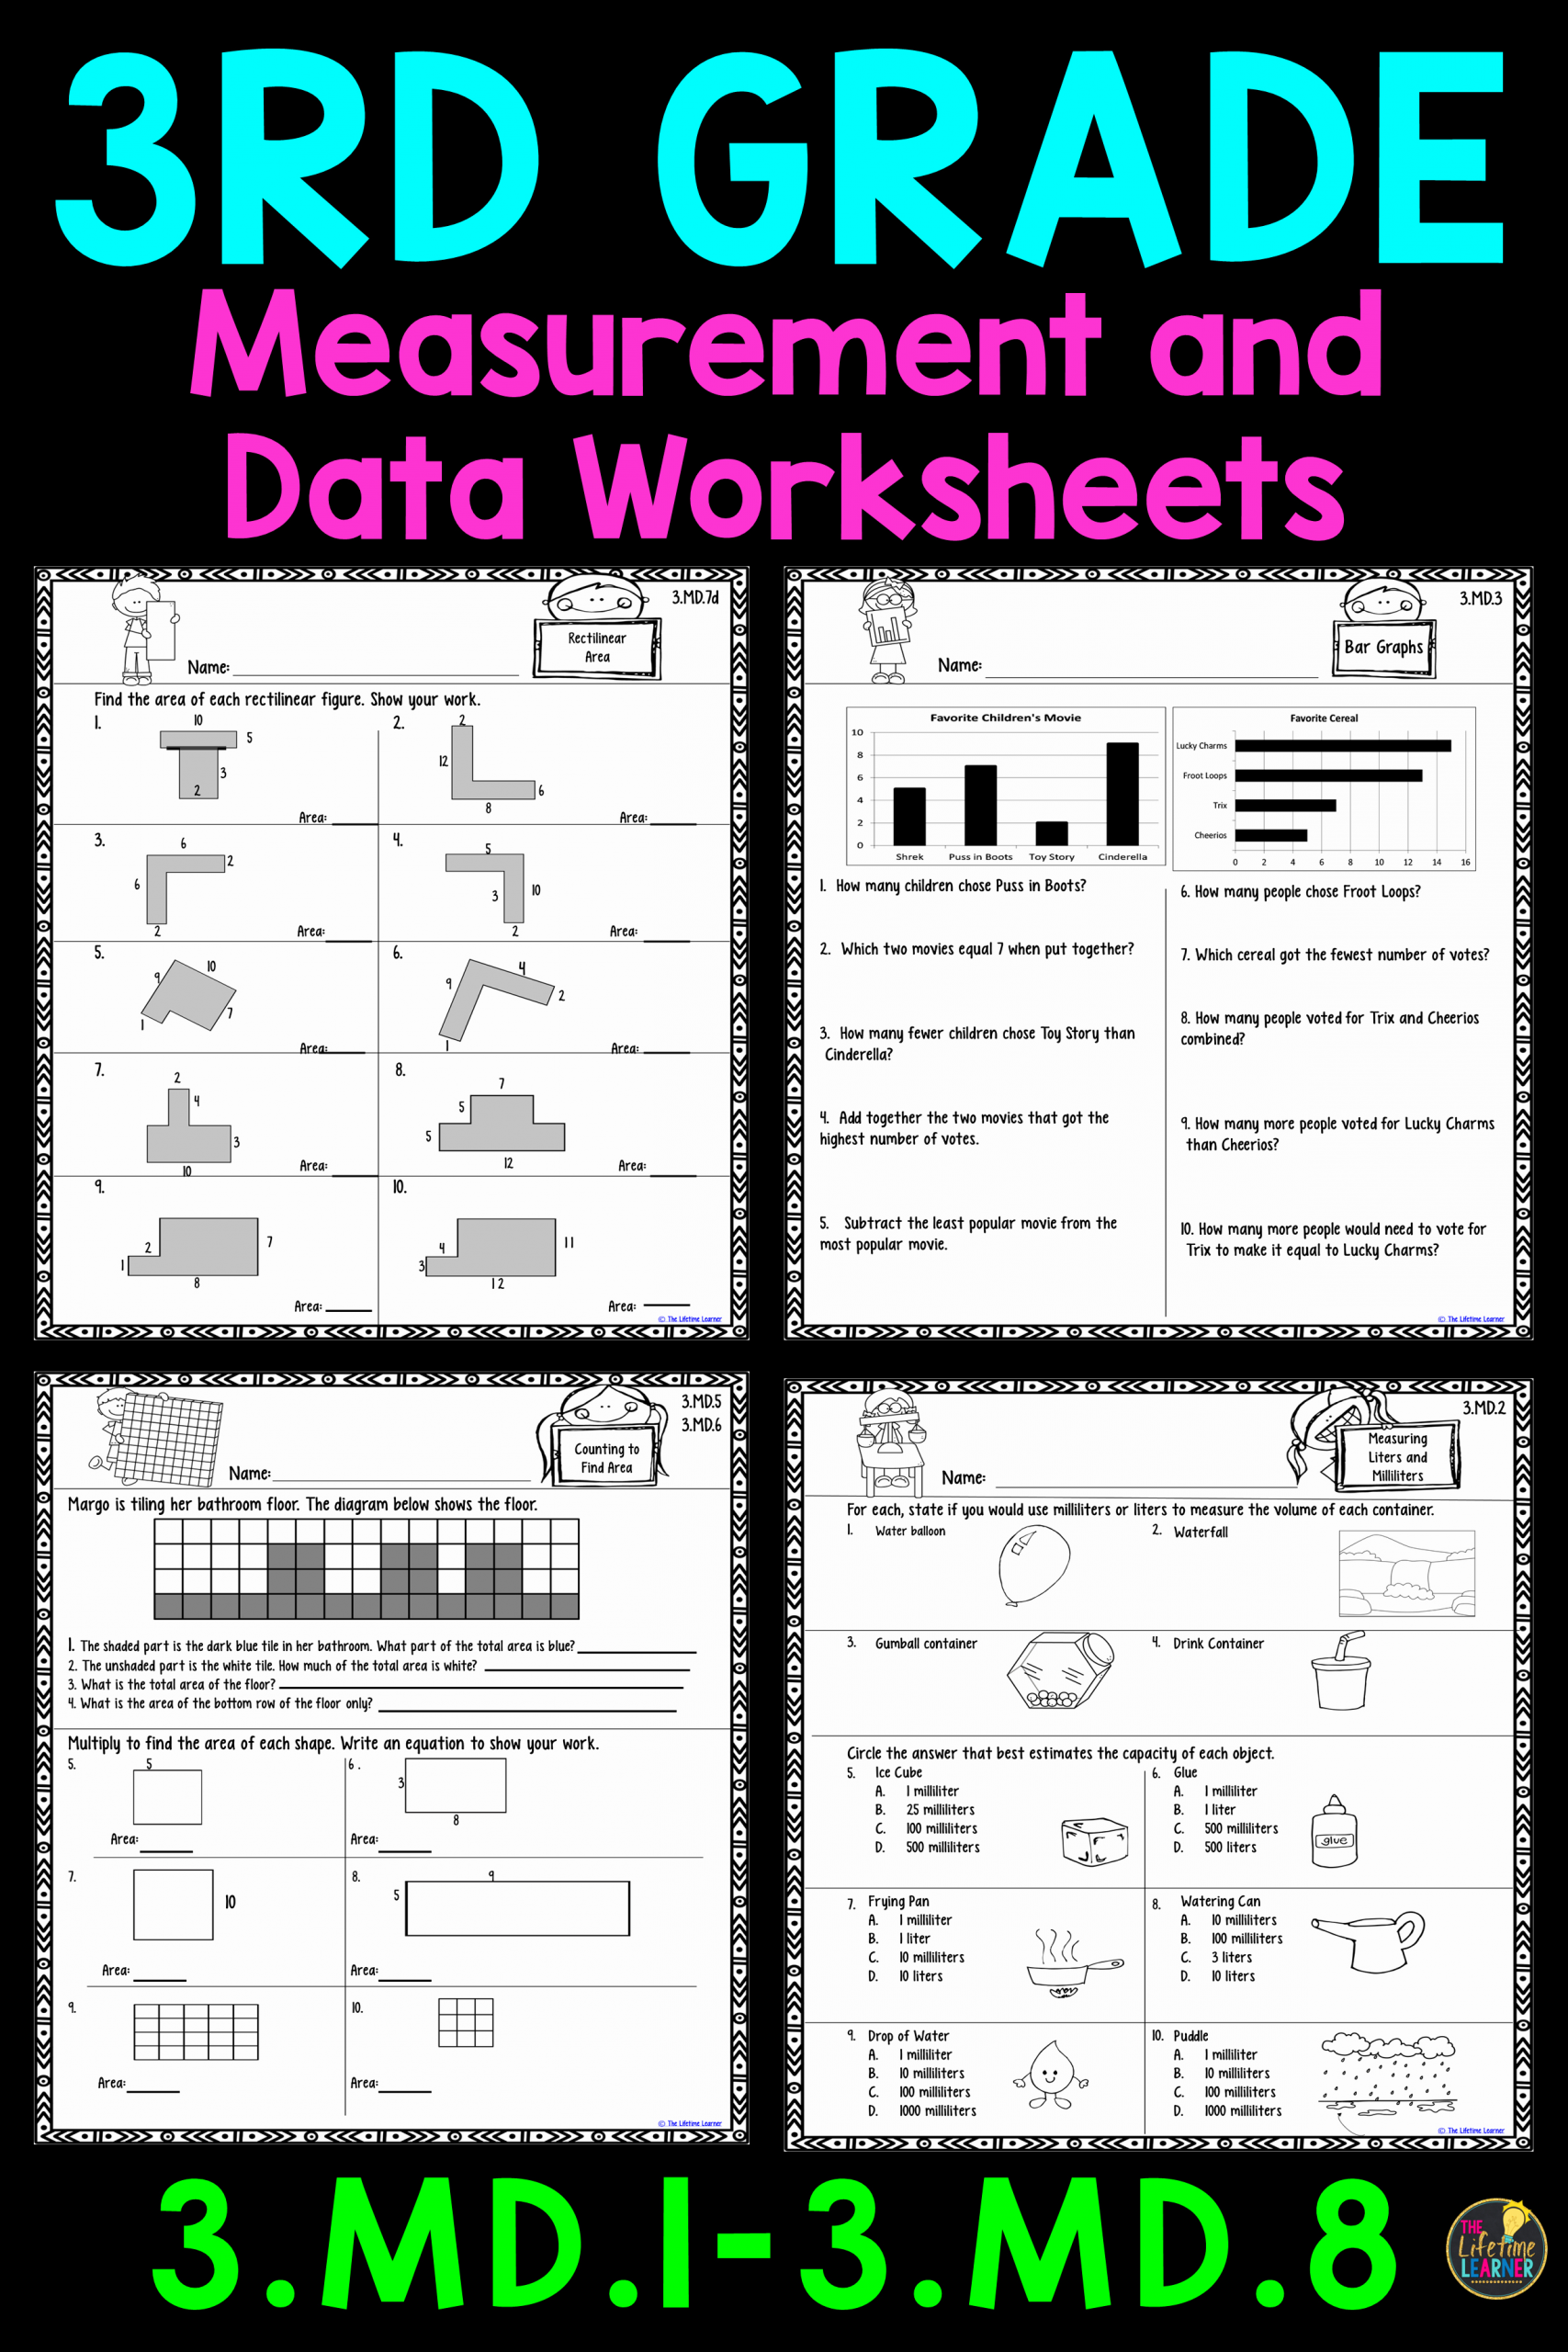 Measuring Worksheets for 3rd Grade Luxury Measurement Practice 3rd Grade Measurement Worksheets